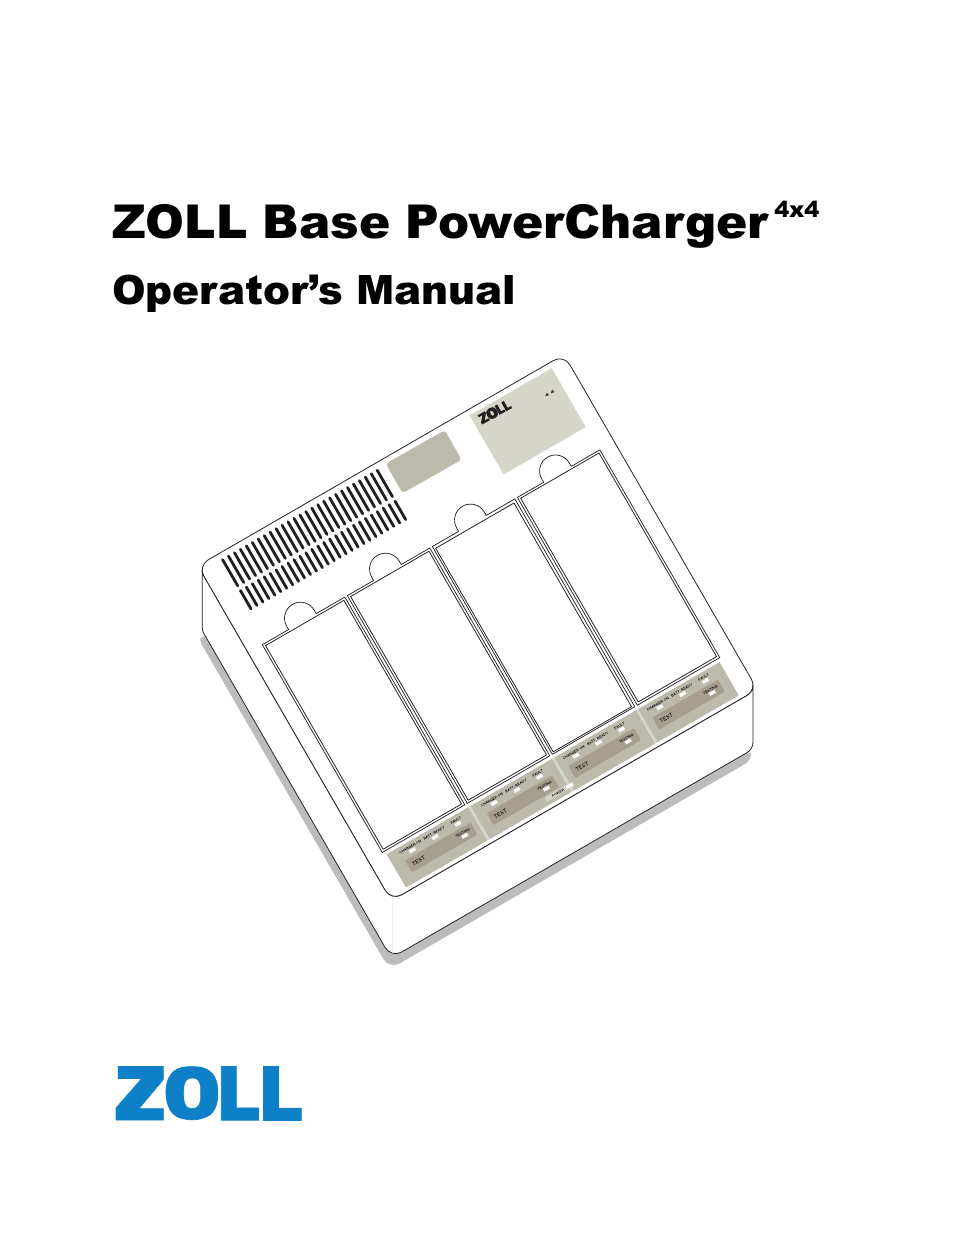 ZOLL M Series Defibrillator Rev G Base PowerCharger 4x4